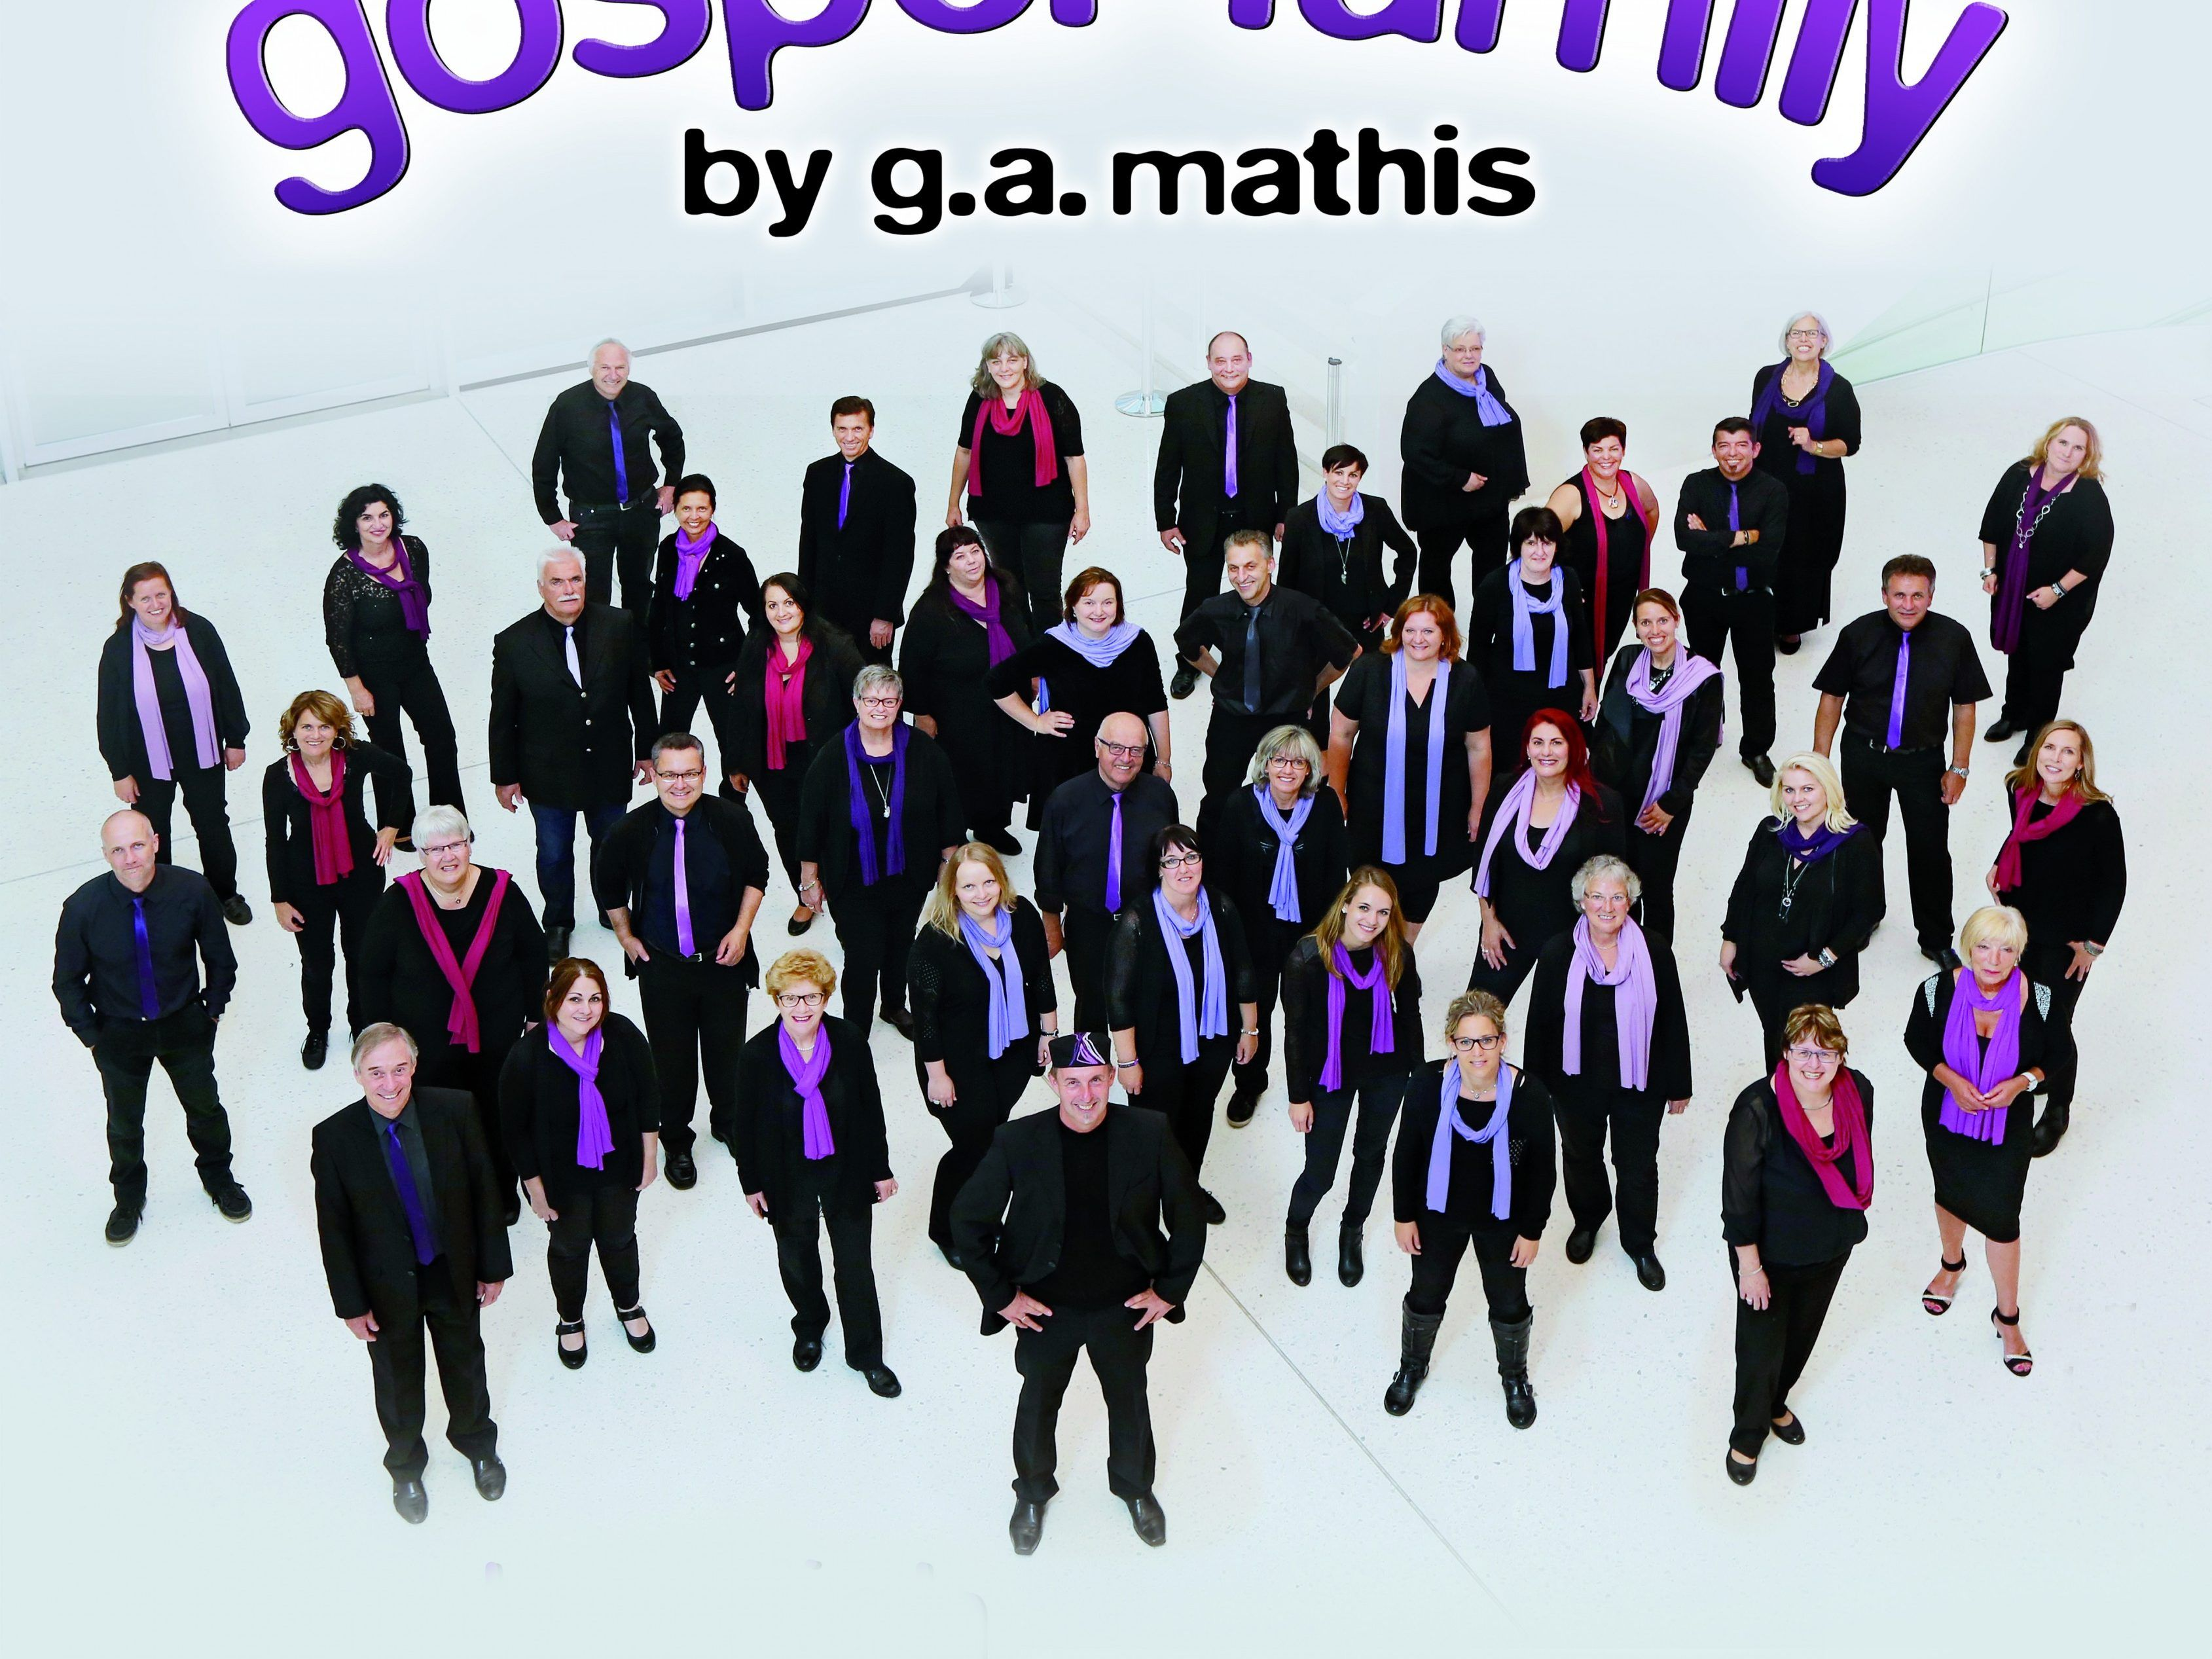 Gospel-family by g.a.mathis